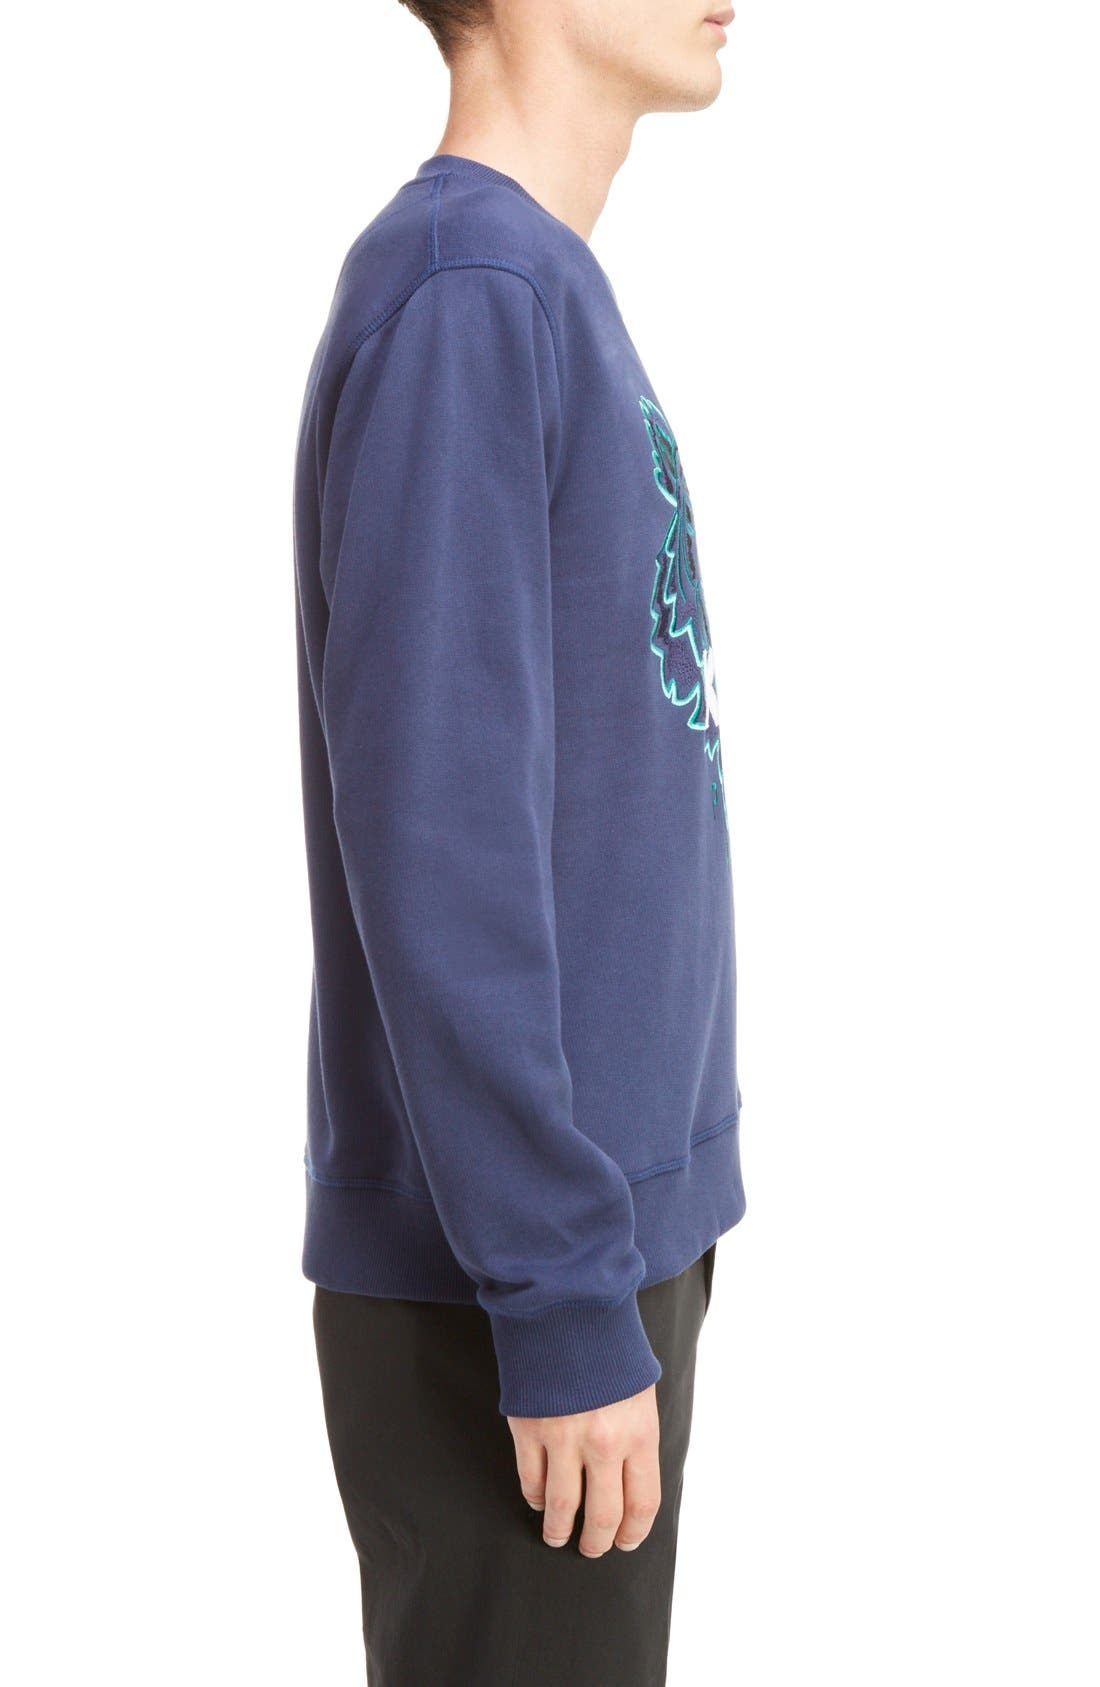 Embroidered Graphic Sweatshirt,                             Alternate thumbnail 6, color,